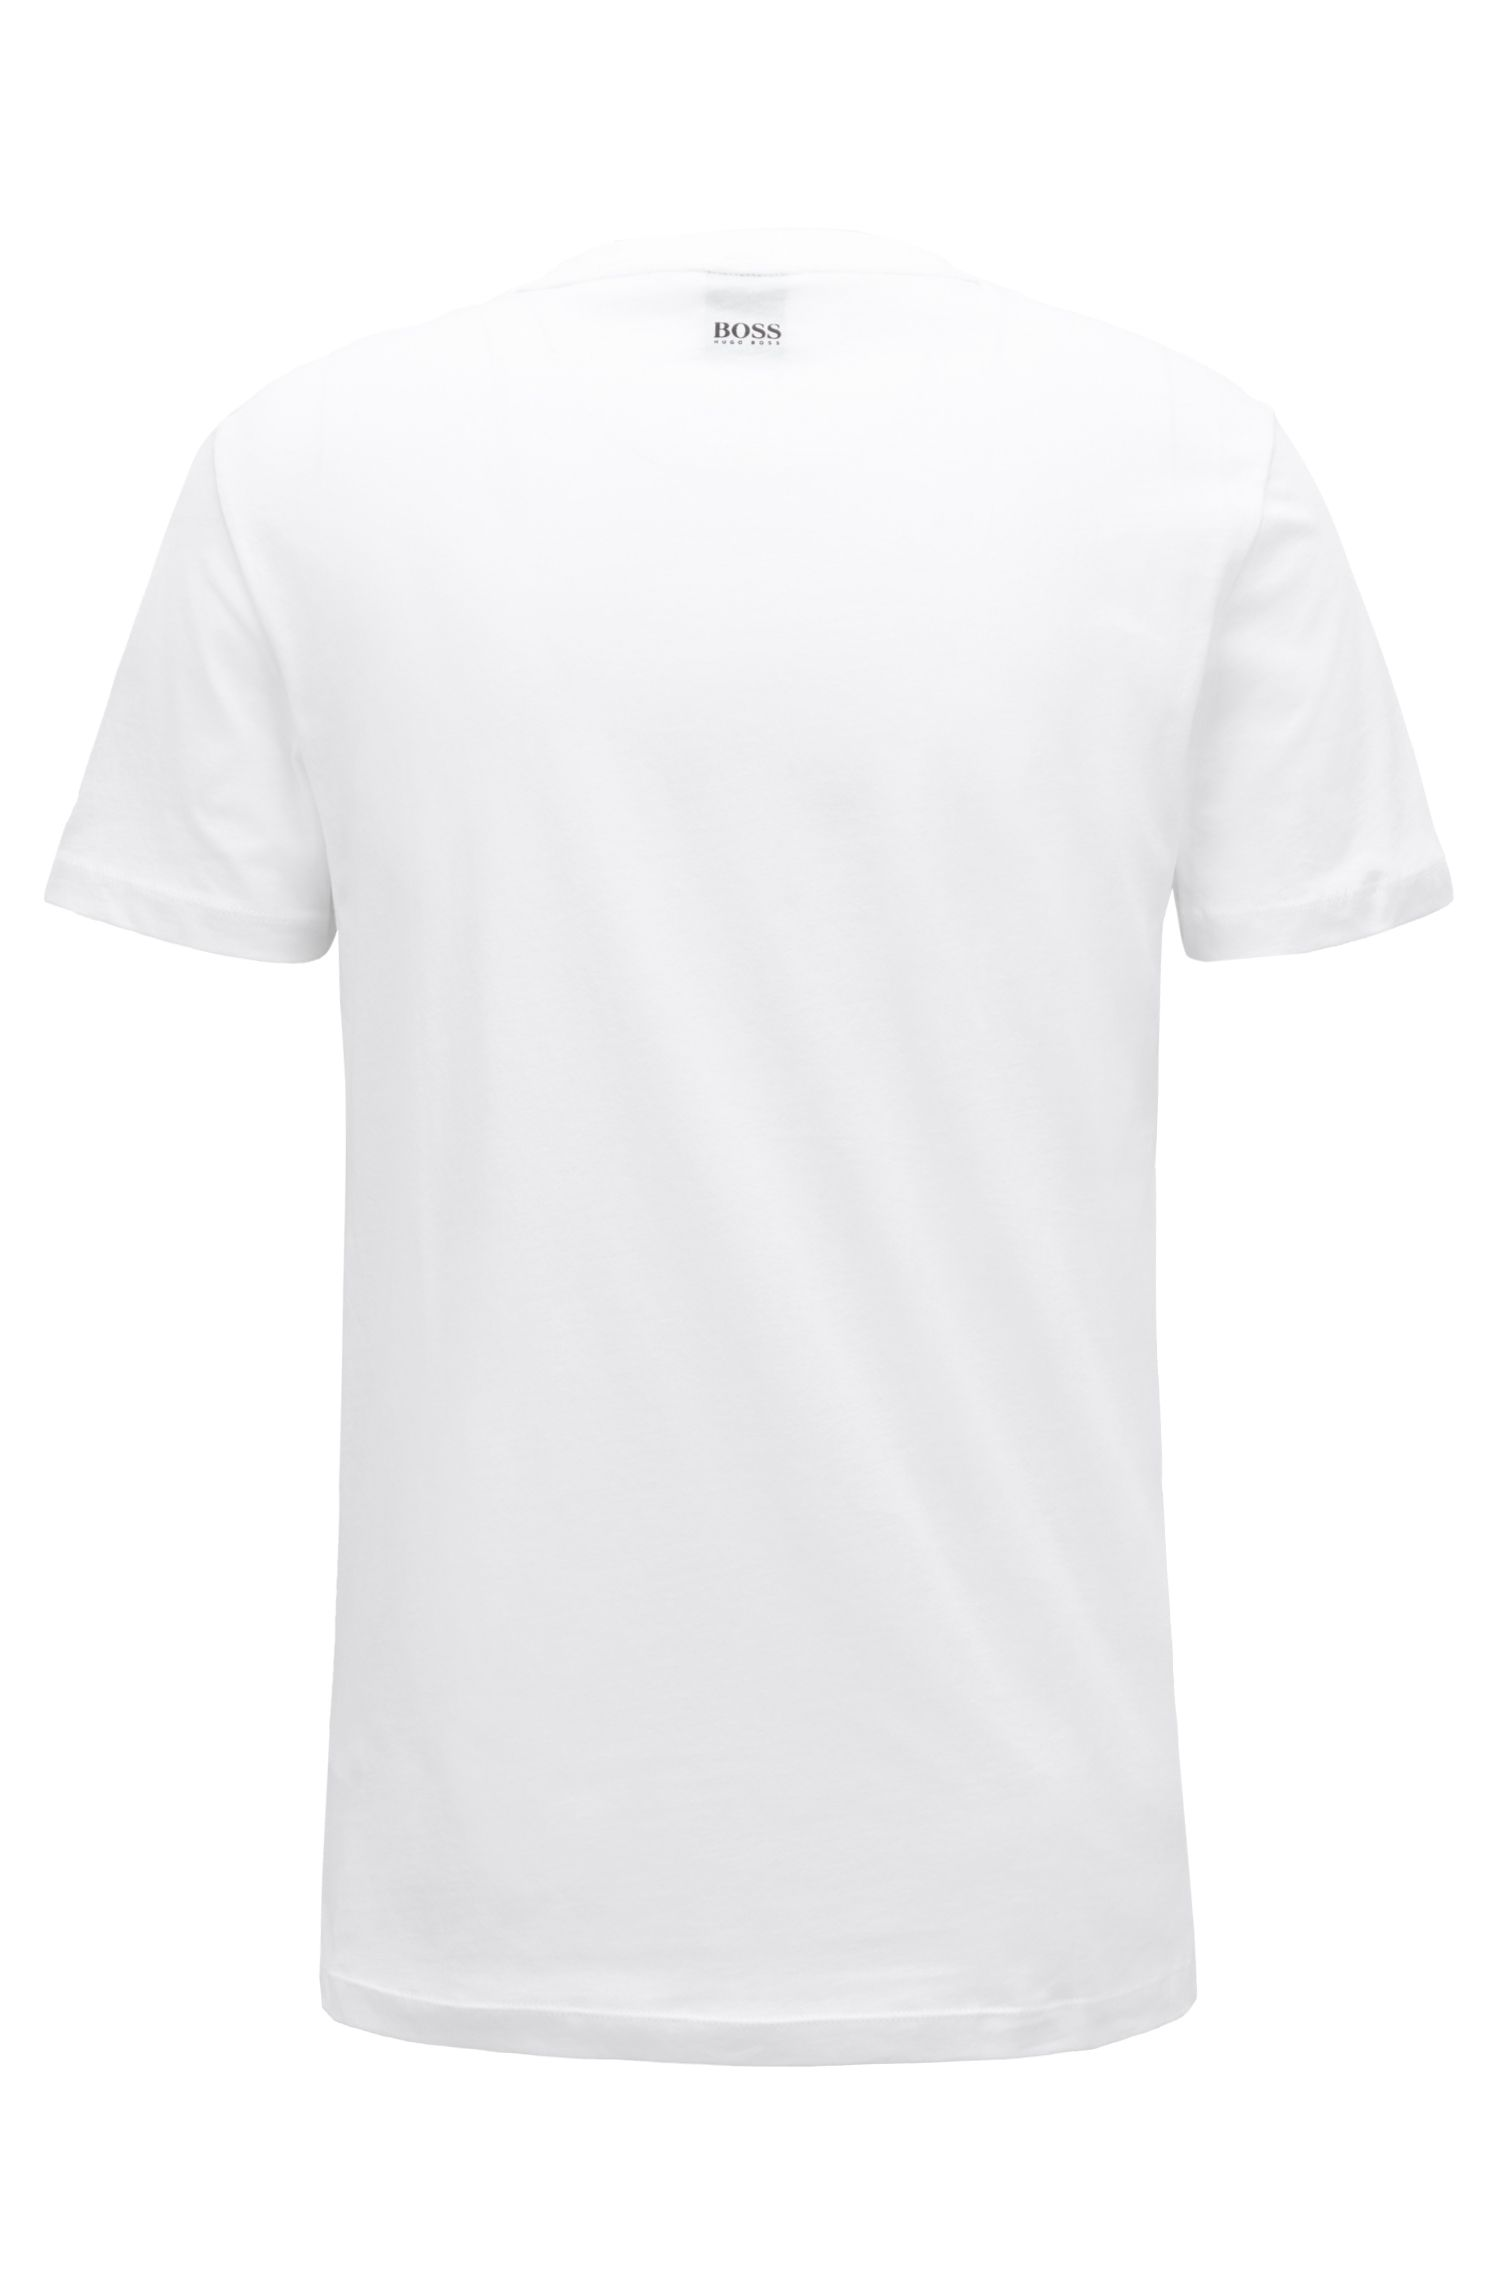 Mixed graphic-print T-shirt in washed cotton, White